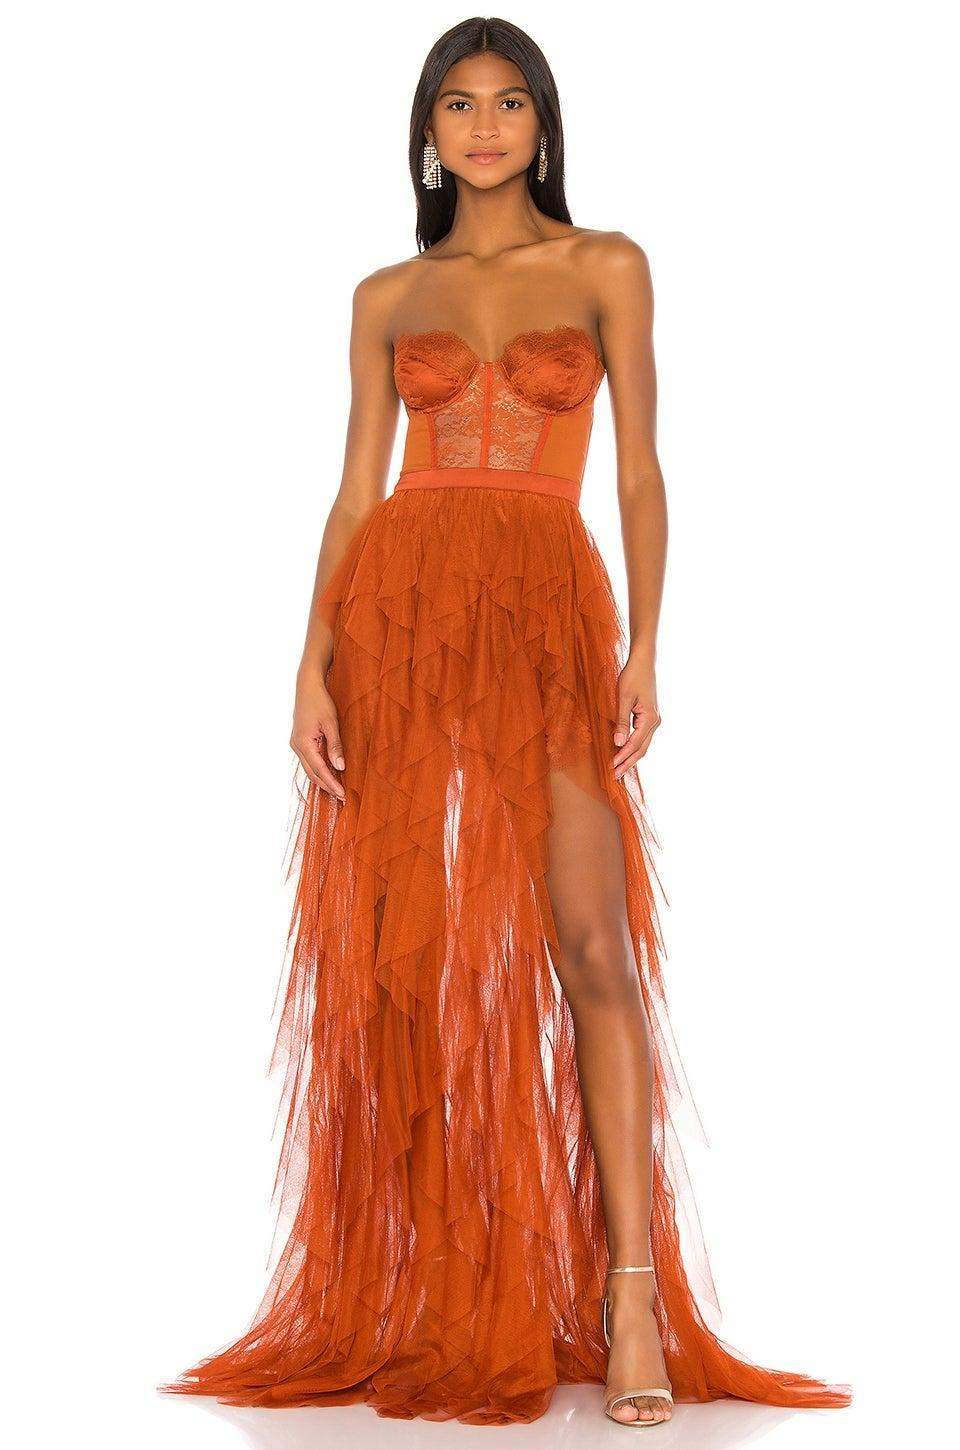 """<h2>For Love & Lemons Bustier Gown In Deep Orange</h2><br>This figure-hugging gown is sheer fun, offering a corset-like bodice structure paired with a chopped-up, leg-baring see-thru skirt. <br><br><em>Shop For Love & Lemons at <strong><a href=""""https://www.revolve.com/for-love-lemons/br/cec5a0"""" rel=""""nofollow noopener"""" target=""""_blank"""" data-ylk=""""slk:Revolve"""" class=""""link rapid-noclick-resp"""">Revolve</a></strong></em> <br><br><strong>For Love & Lemons</strong> Sienna Bustier Gown, $, available at <a href=""""https://go.skimresources.com/?id=30283X879131&url=https%3A%2F%2Fwww.revolve.com%2Ffor-love-lemons-x-revolve-bustier-gown%2Fdp%2FFORL-WD734%2F%3Fd%3DWomens"""" rel=""""nofollow noopener"""" target=""""_blank"""" data-ylk=""""slk:Revolve"""" class=""""link rapid-noclick-resp"""">Revolve</a>"""